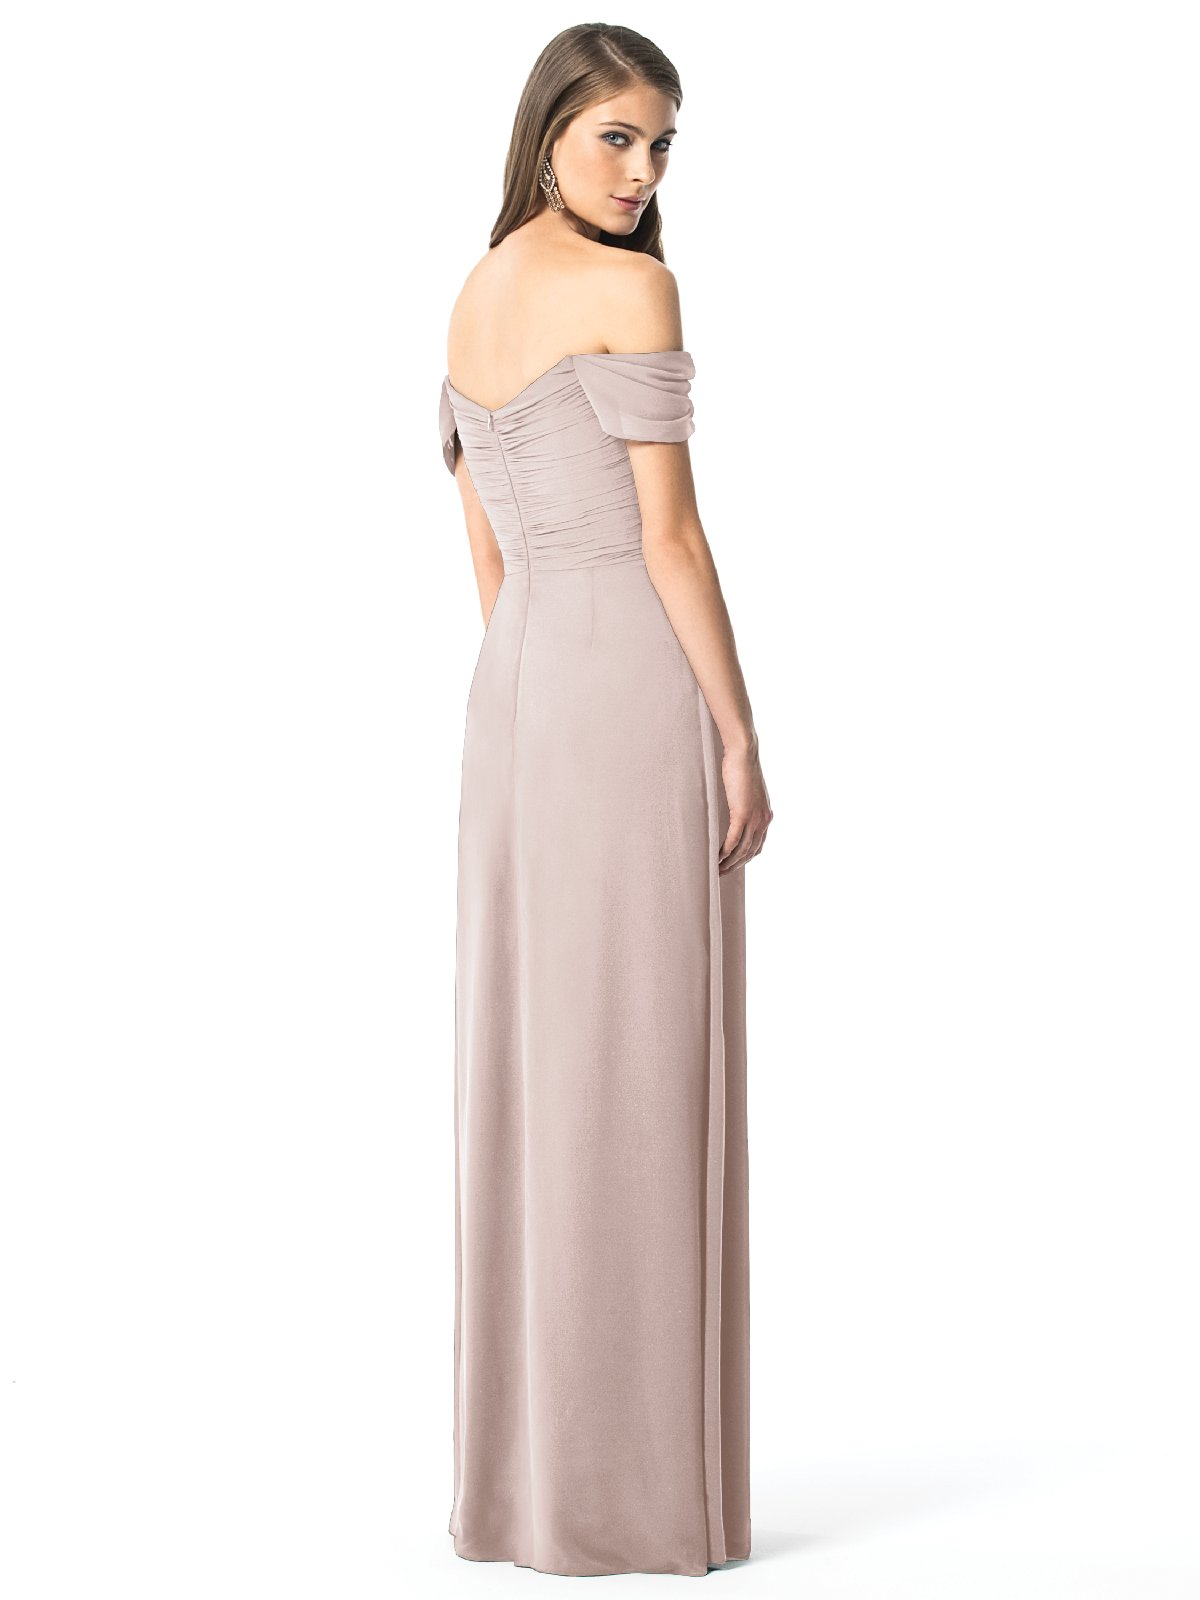 Dessy bridesmaid dressesdessy dresses 2844d2844the dessy group dessy bridesmaid dresses dessy 2844 ombrellifo Images